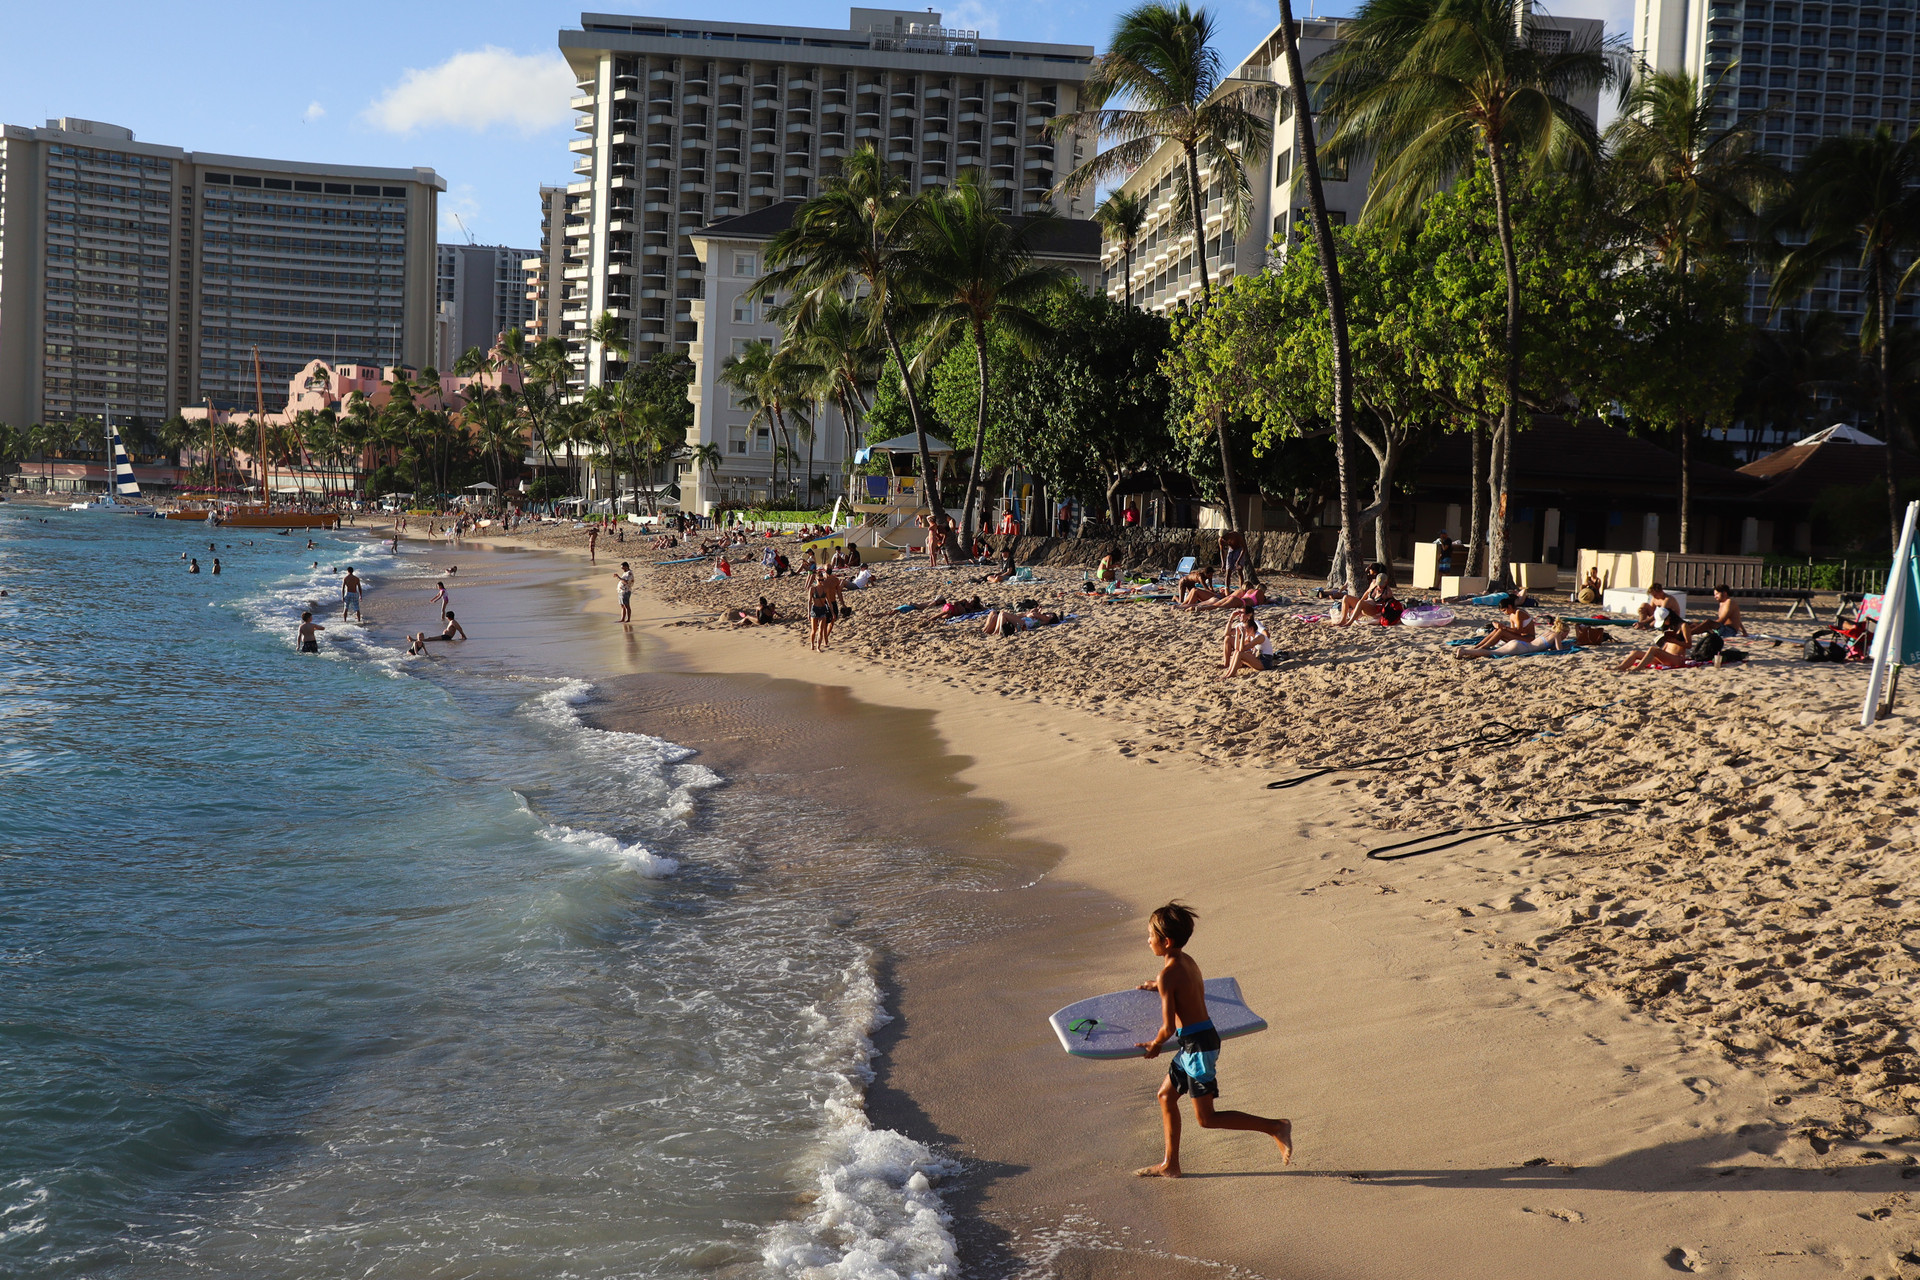 Tourists and residents gather at Waikiki Beach on November 20, 2020. The beach that was once deserted due to the pandemic is now seeing comparatively better crowd.